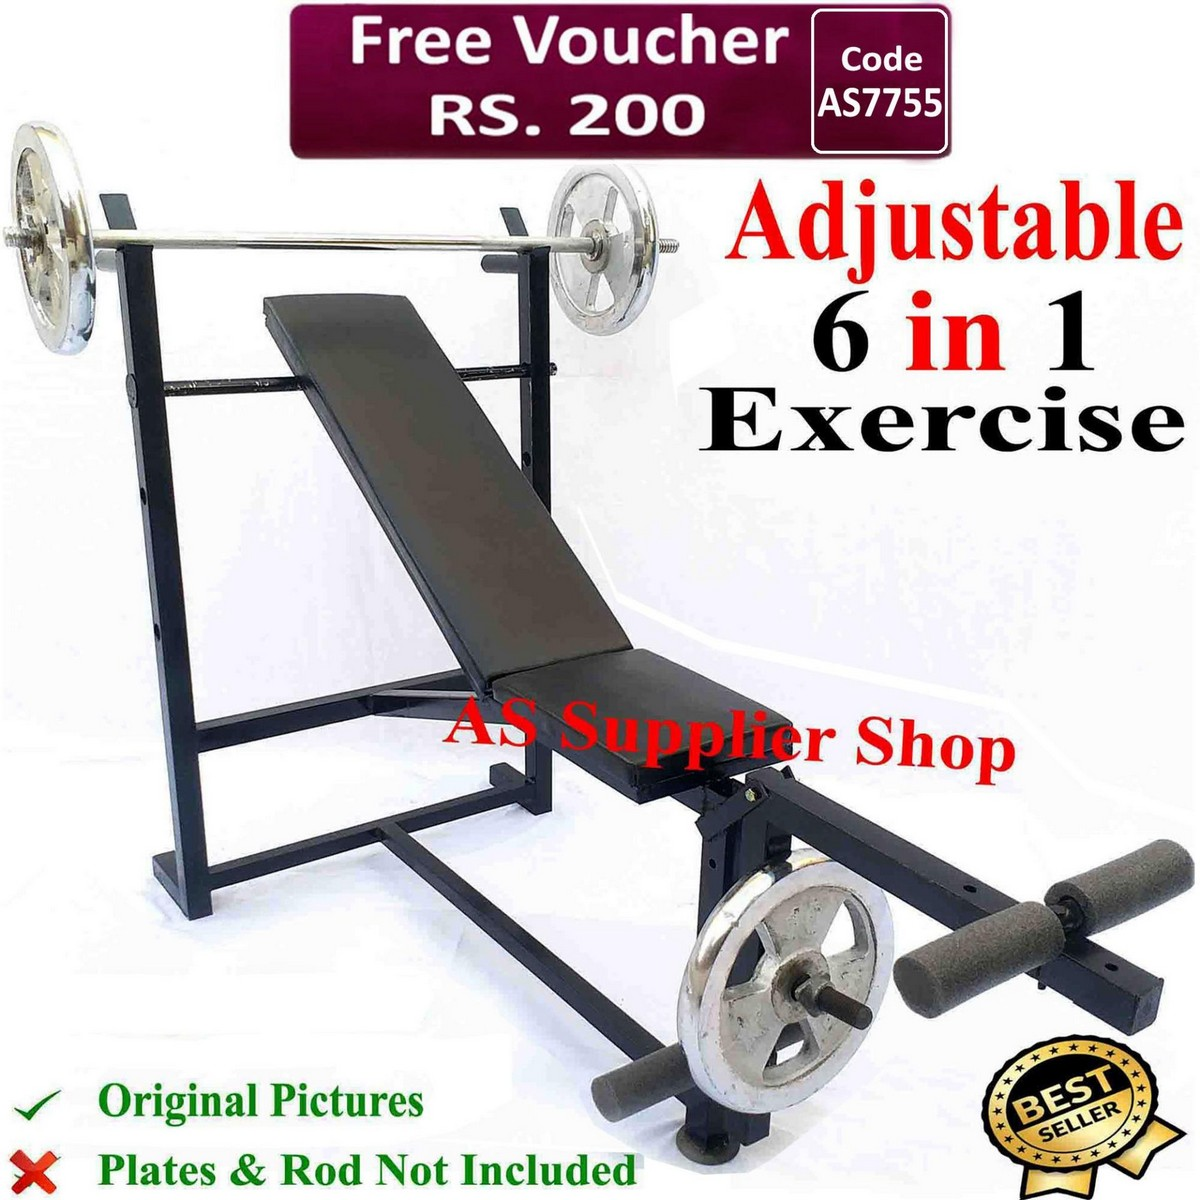 BEST Quality Multi 6 Exercise Adjustable Chest Bench Press Incline Decline Straight Flat Leg Thigh Biceps Bench Press Chest Exercise Bench Press Weight Lifting Bench Press Body Building Bench Press Home Gym Dumbbells Chest Workout Gym Bench Press